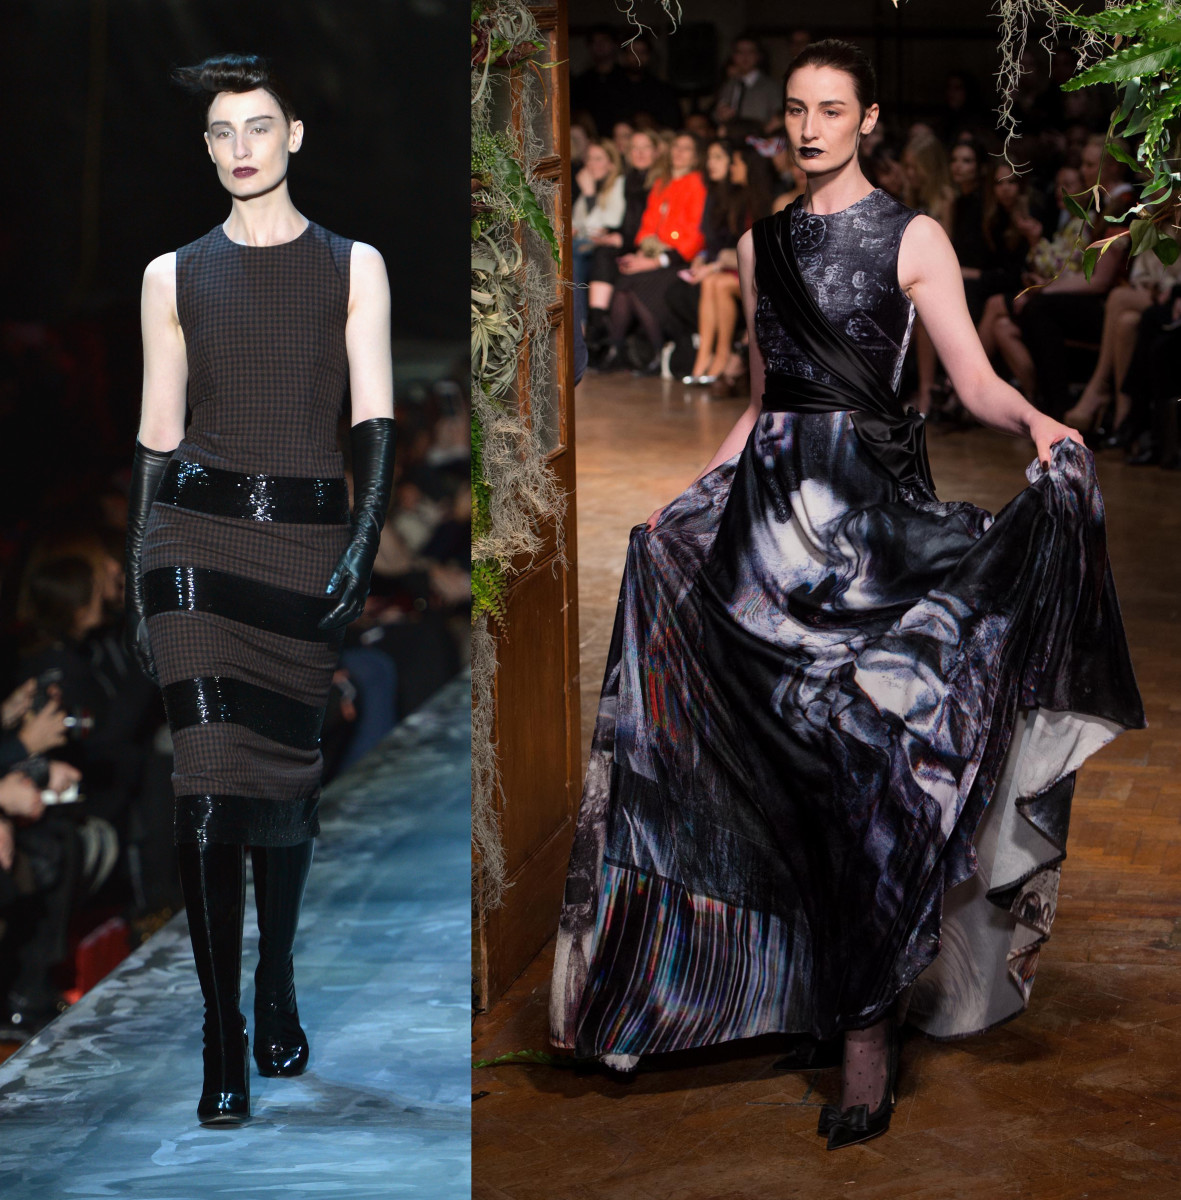 Erin O'Connor walking the runway for Marc Jacobs (left) and Giles (right). Photos: Slaven Vlasic/Getty Images and Ian Gavan/Getty Images